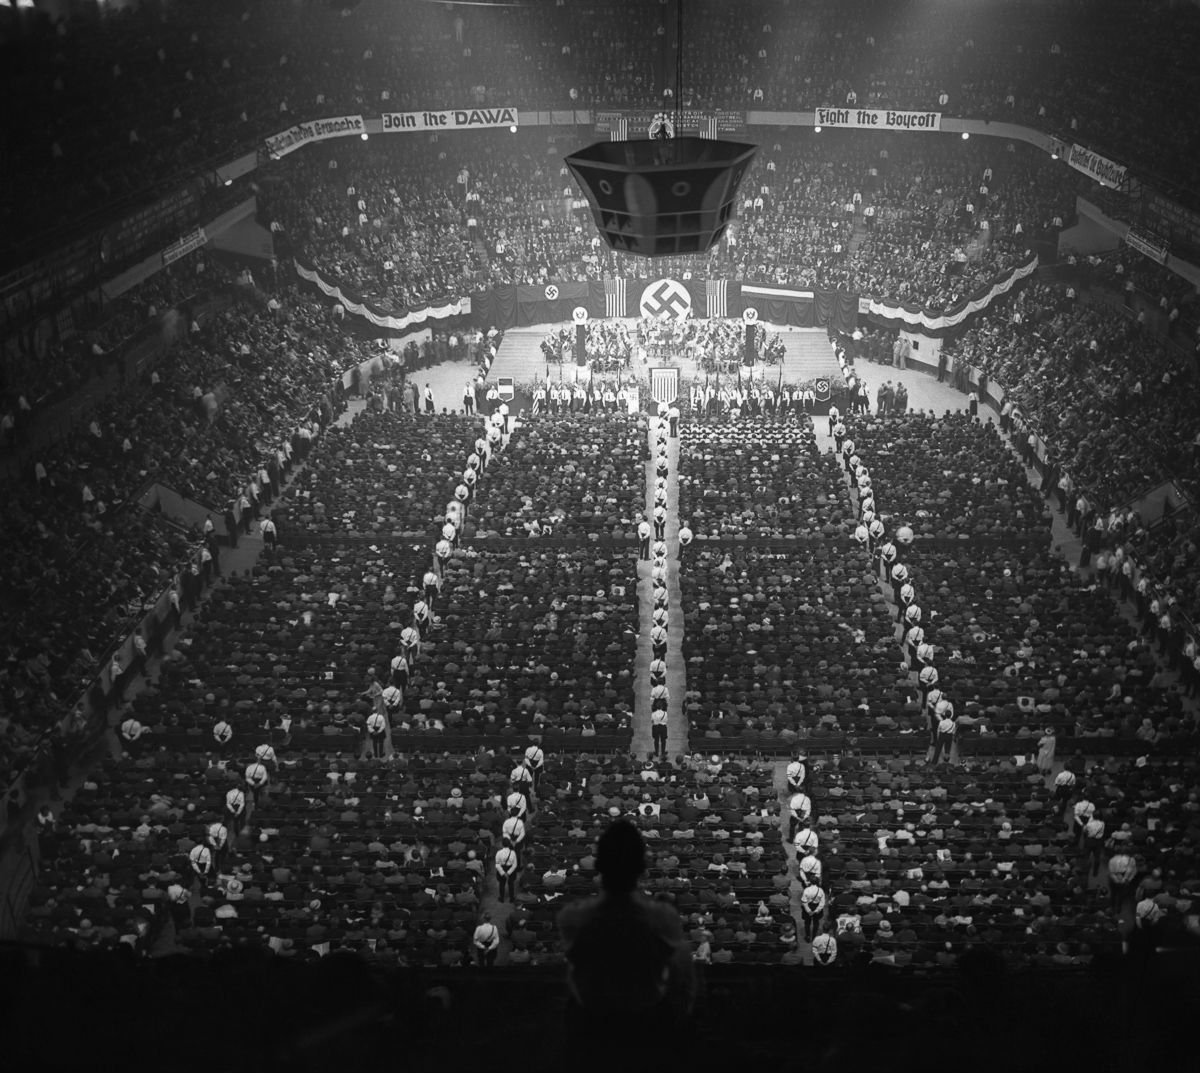 Nazi Rally in Madison Square Garden in pictures